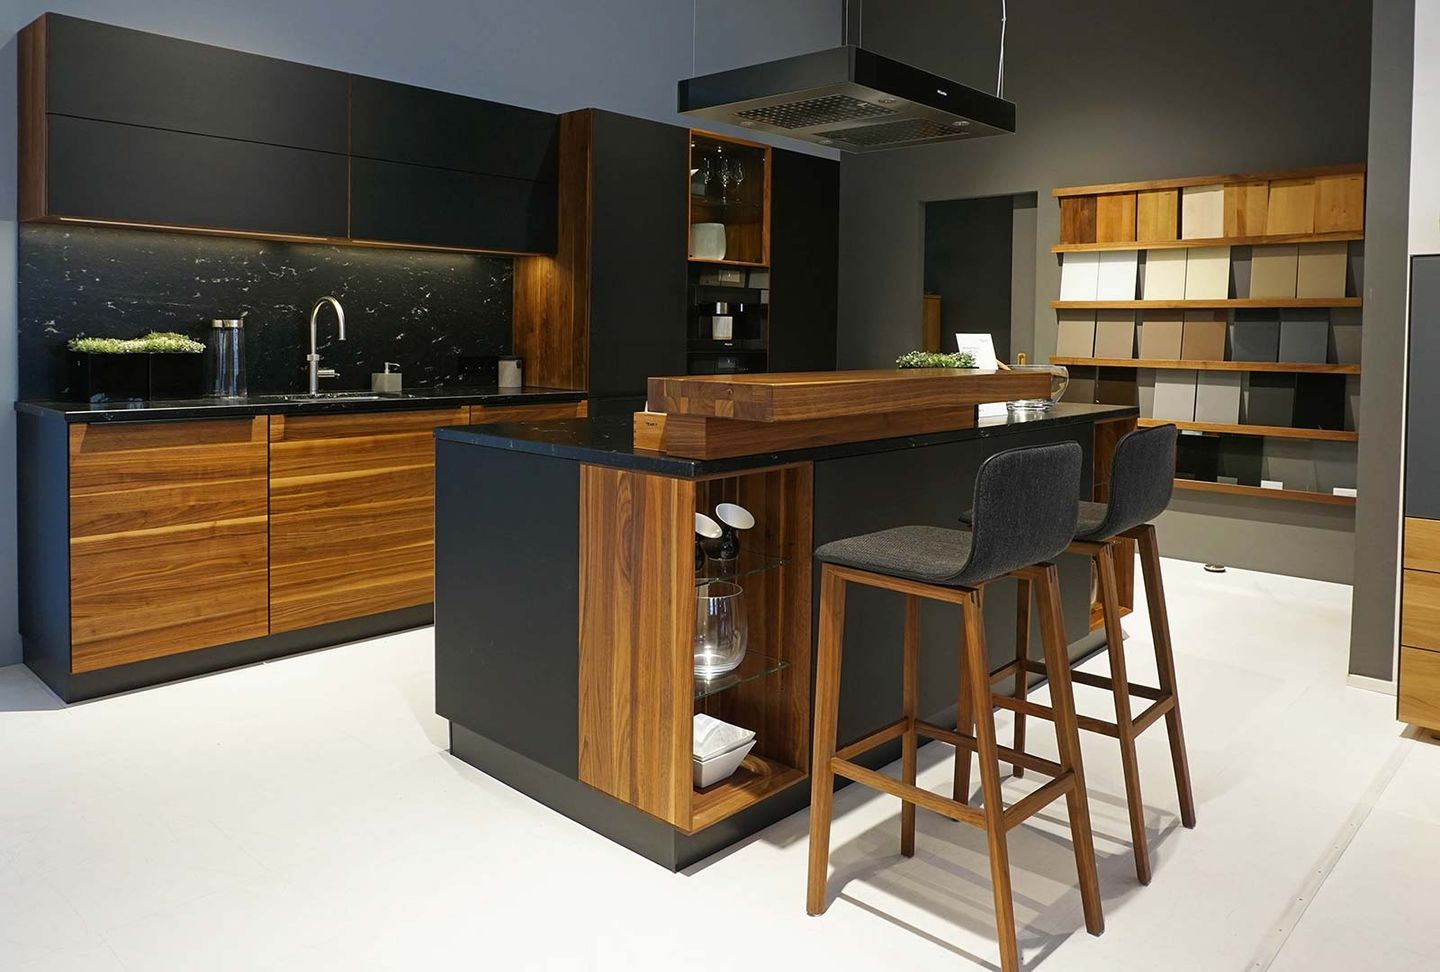 Team Sieben Küchen Showroom Exhibition Of Solid Wood Furniture For All Living Areas